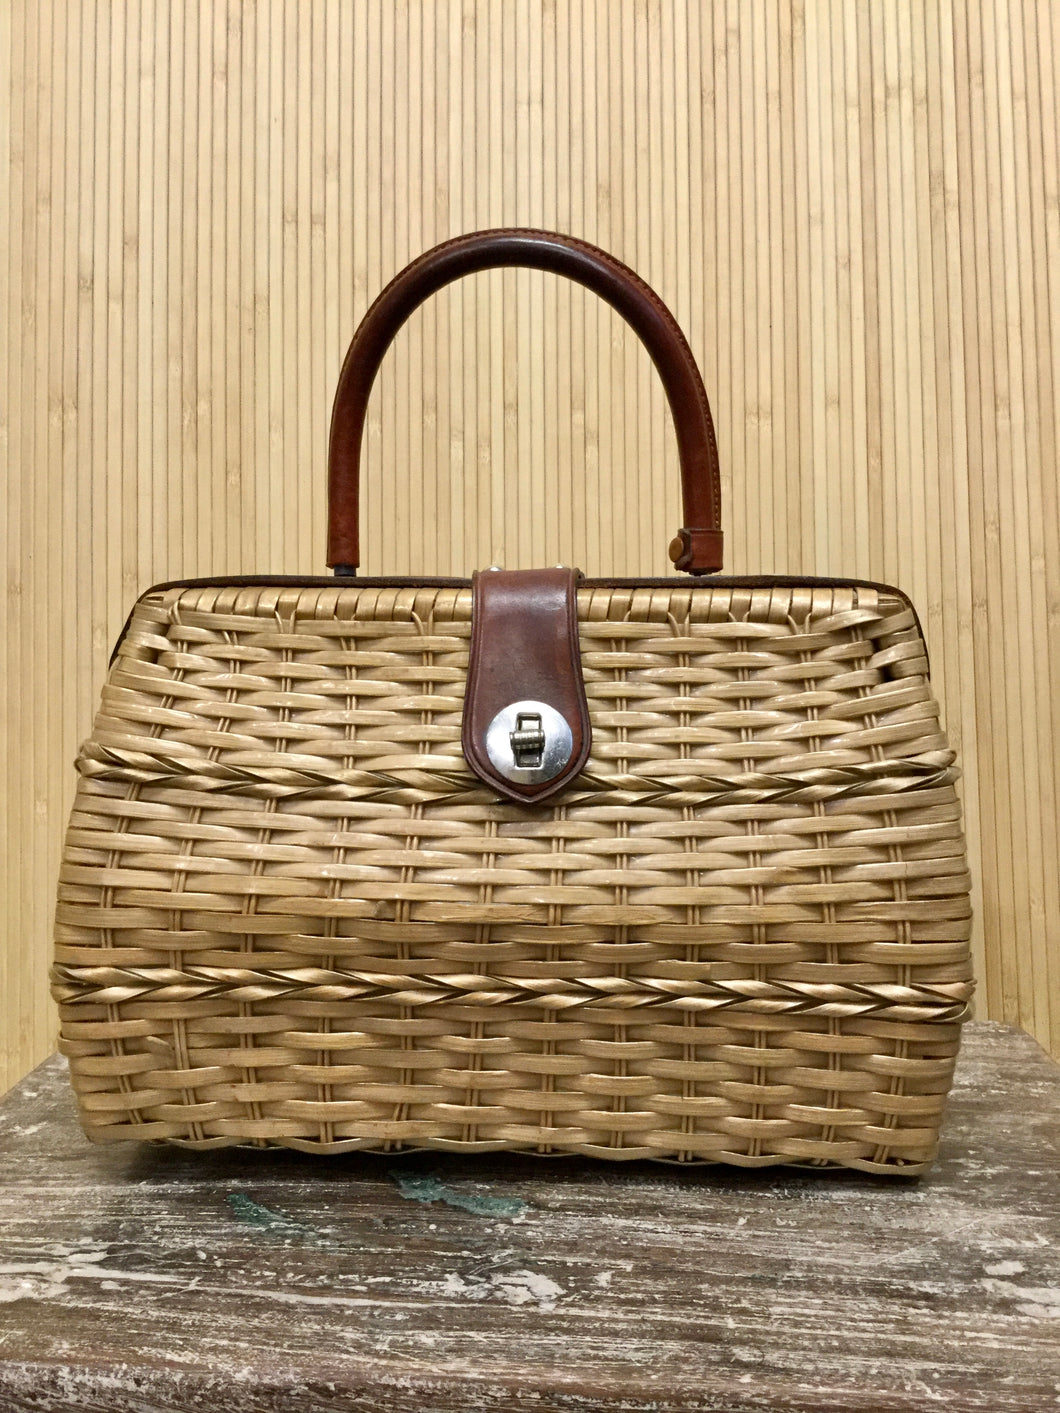 Mantessa Wicker Purse